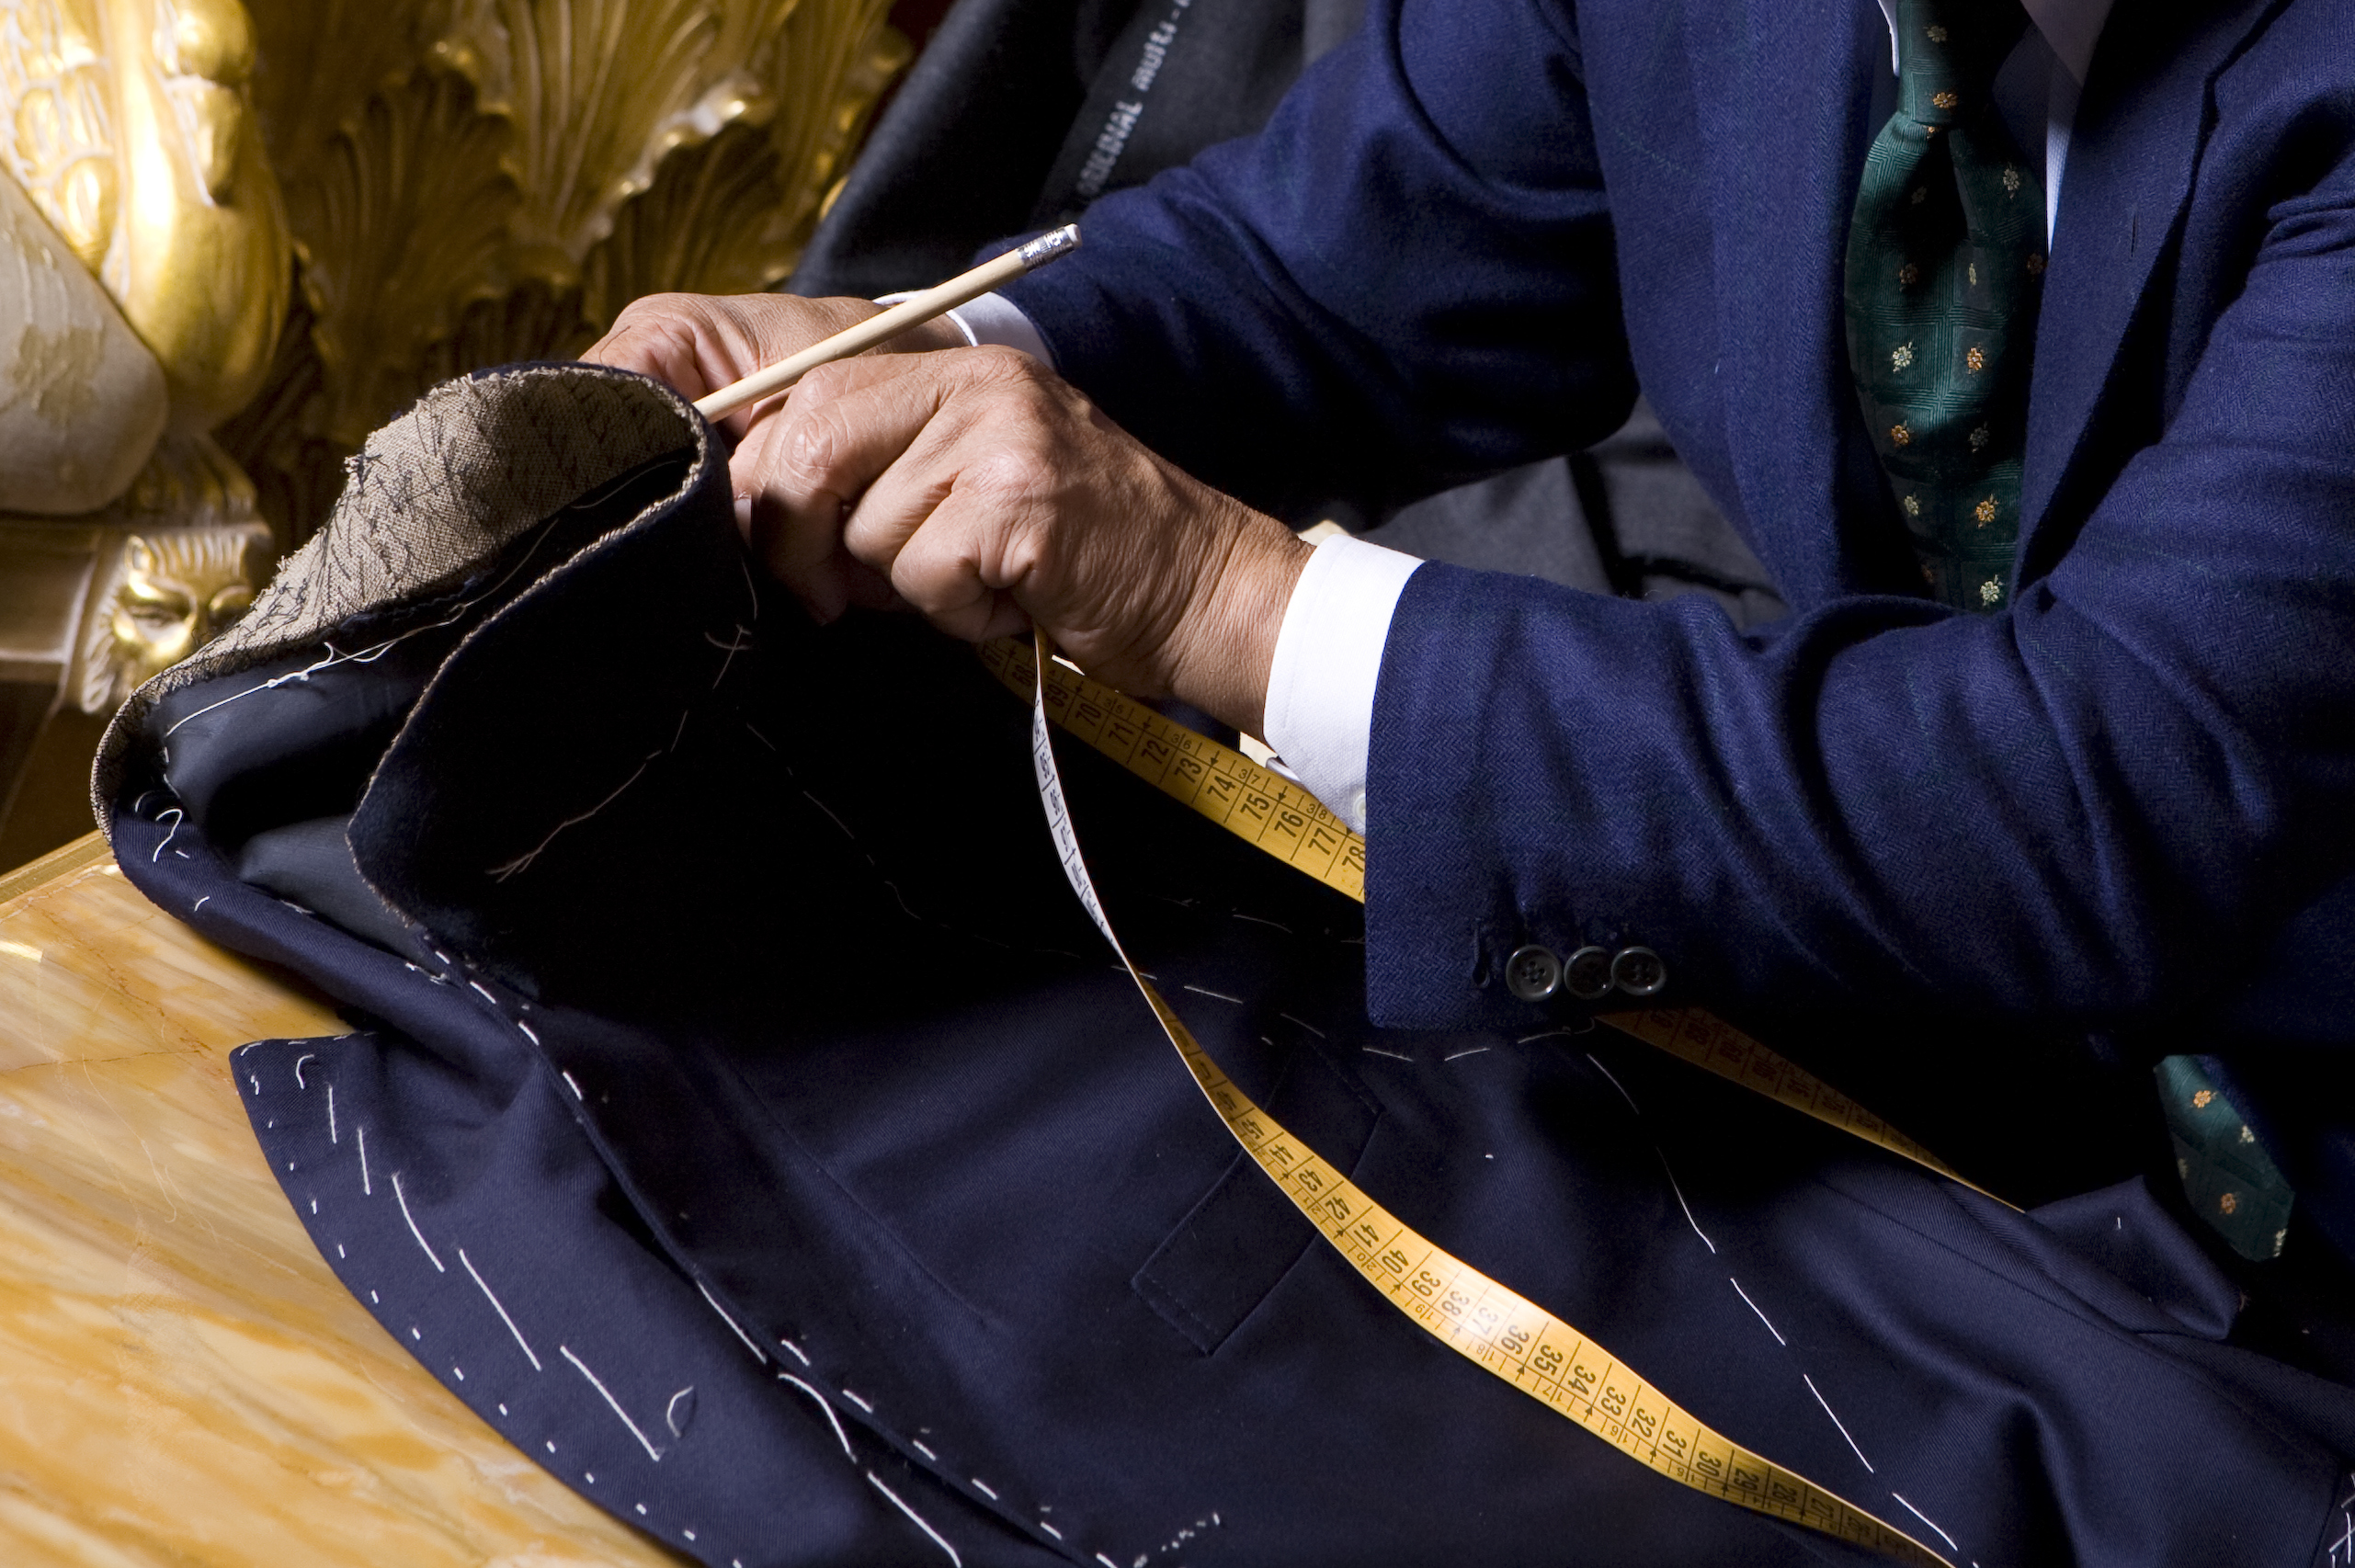 Handcrafted Custom Suits and Clothing